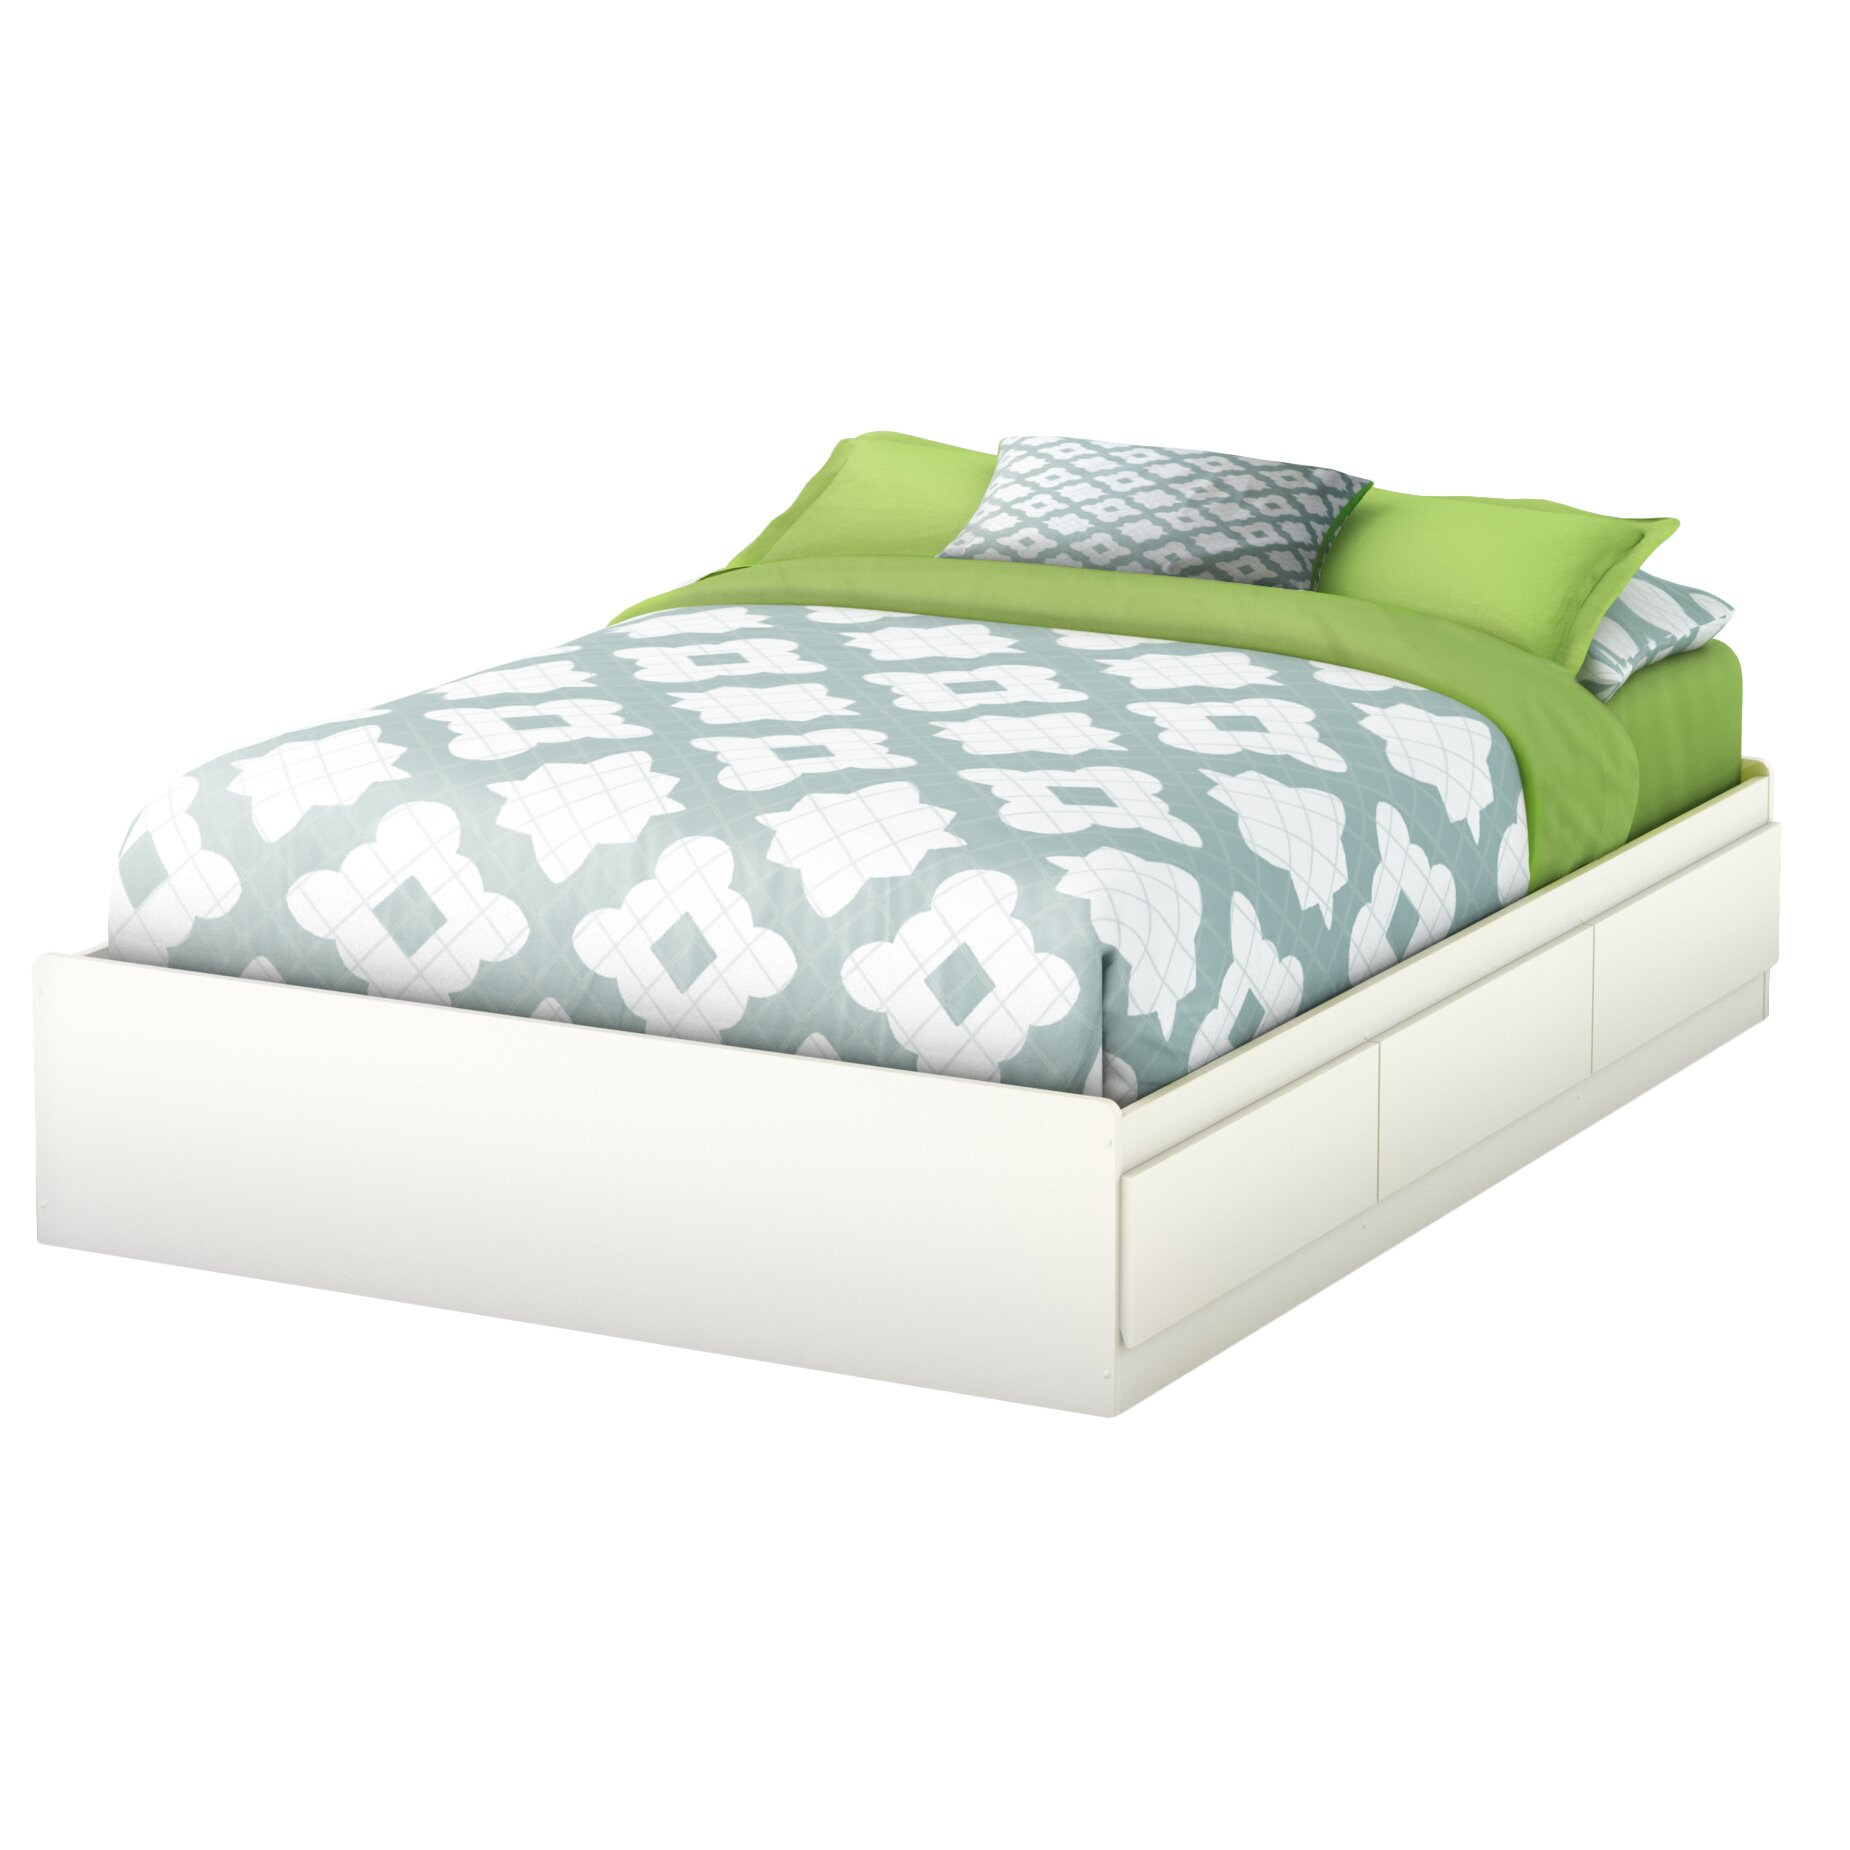 South shore full double storage platform bed reviews for Pedestal bed